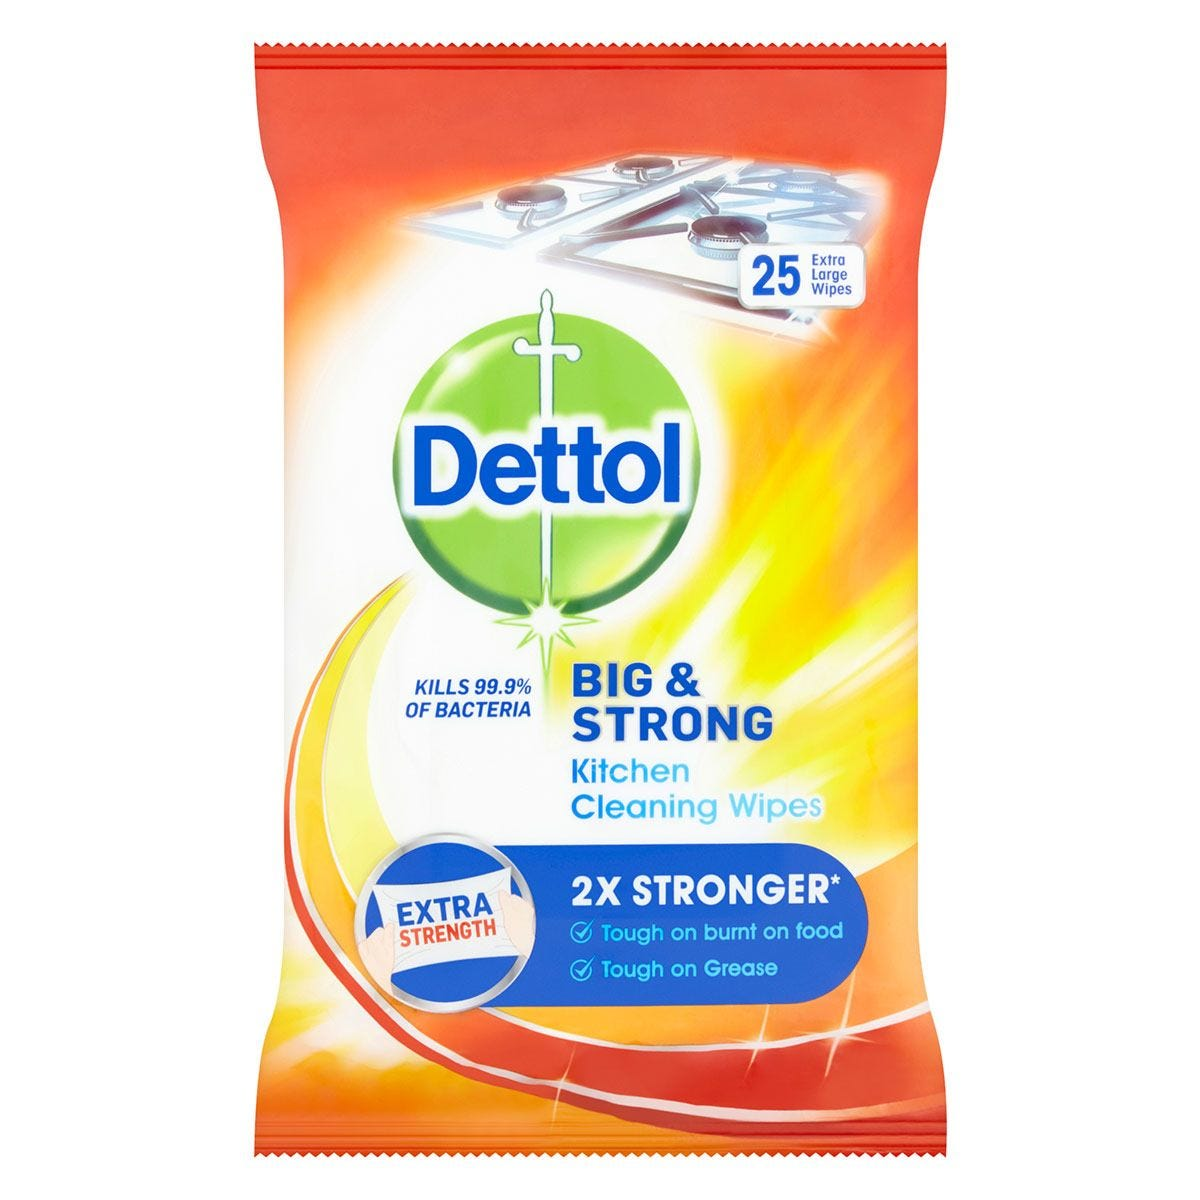 Dettol Big & Strong Antibacterial Kitchen Wipes - 25 Pack